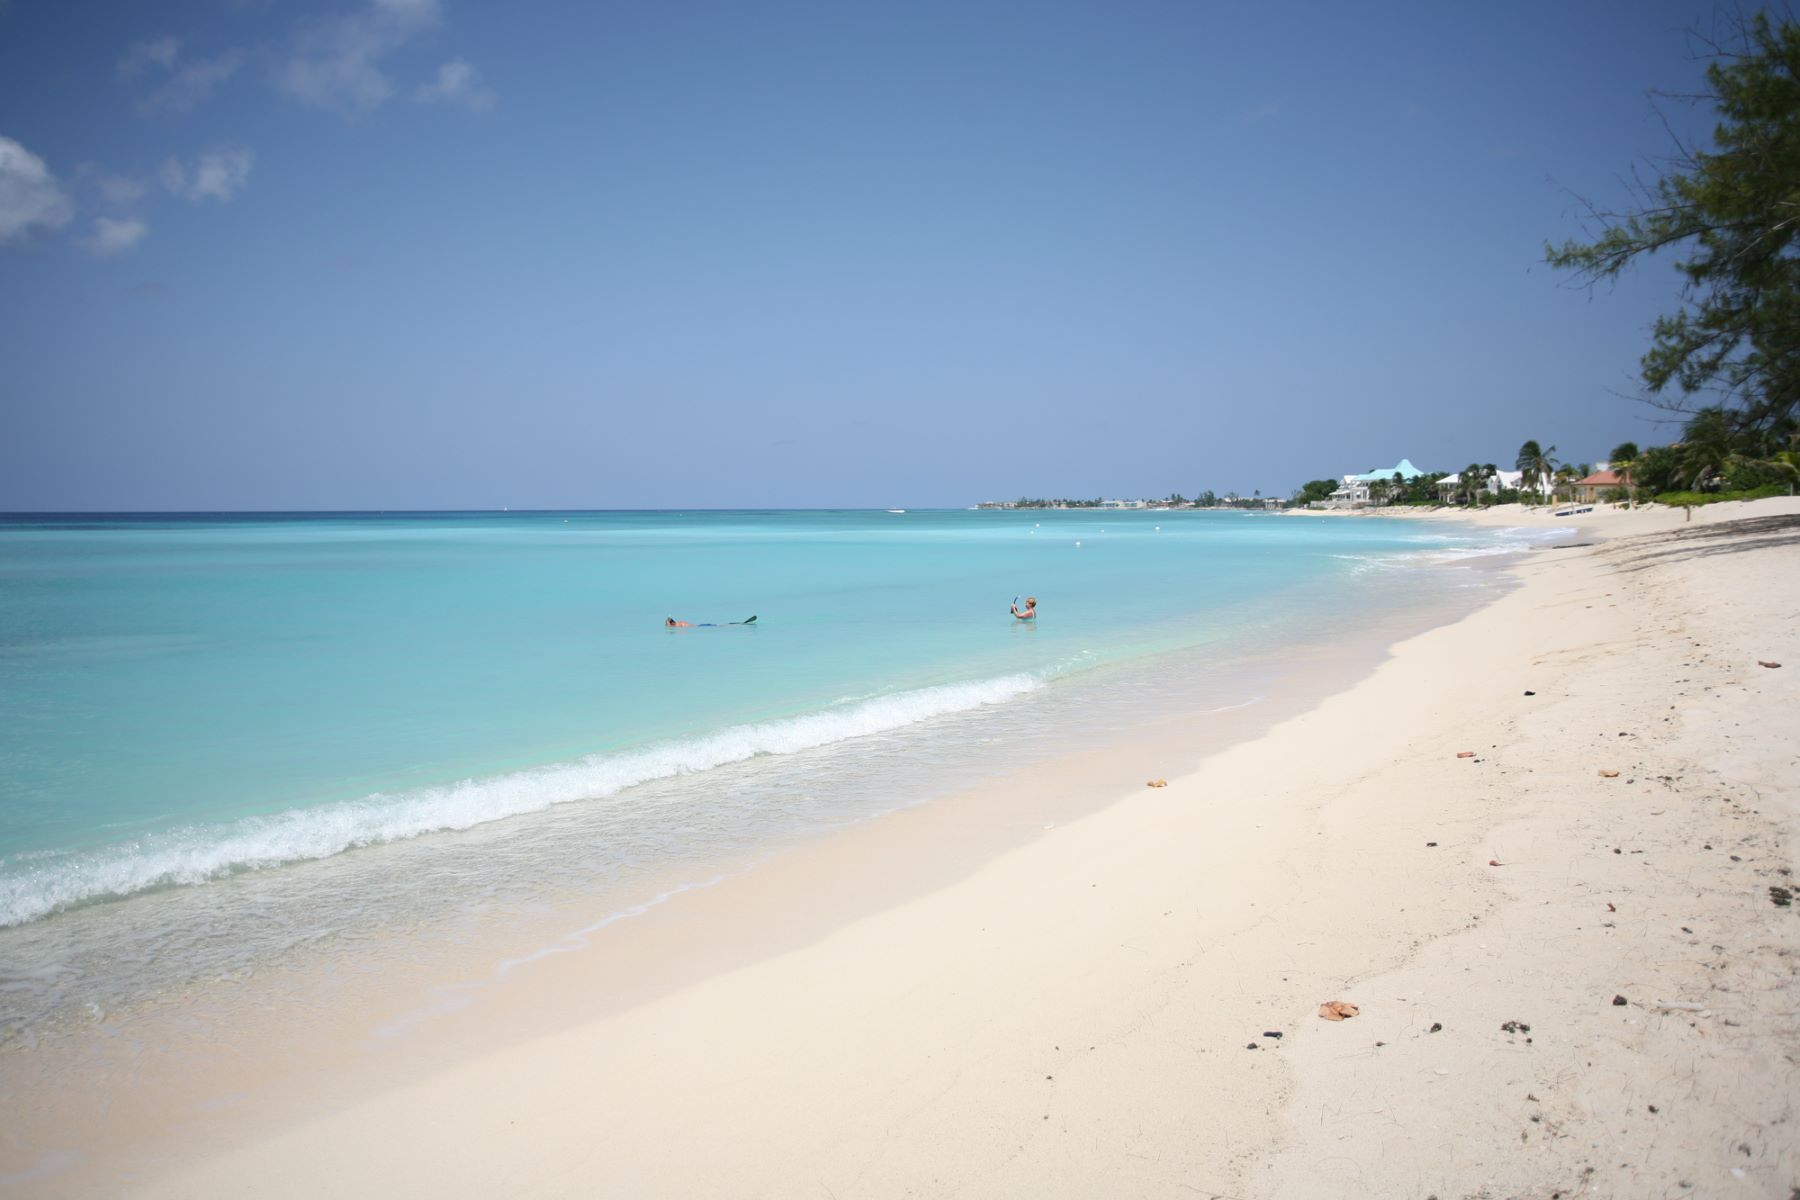 Additional photo for property listing at Sundial Condos, Seven Mile Beach Sundial Condos, W Bay Rd, Grand Cayman, Cayman Islands Seven Mile Beach, Gran Caimán CAYMAN Islas Caimán